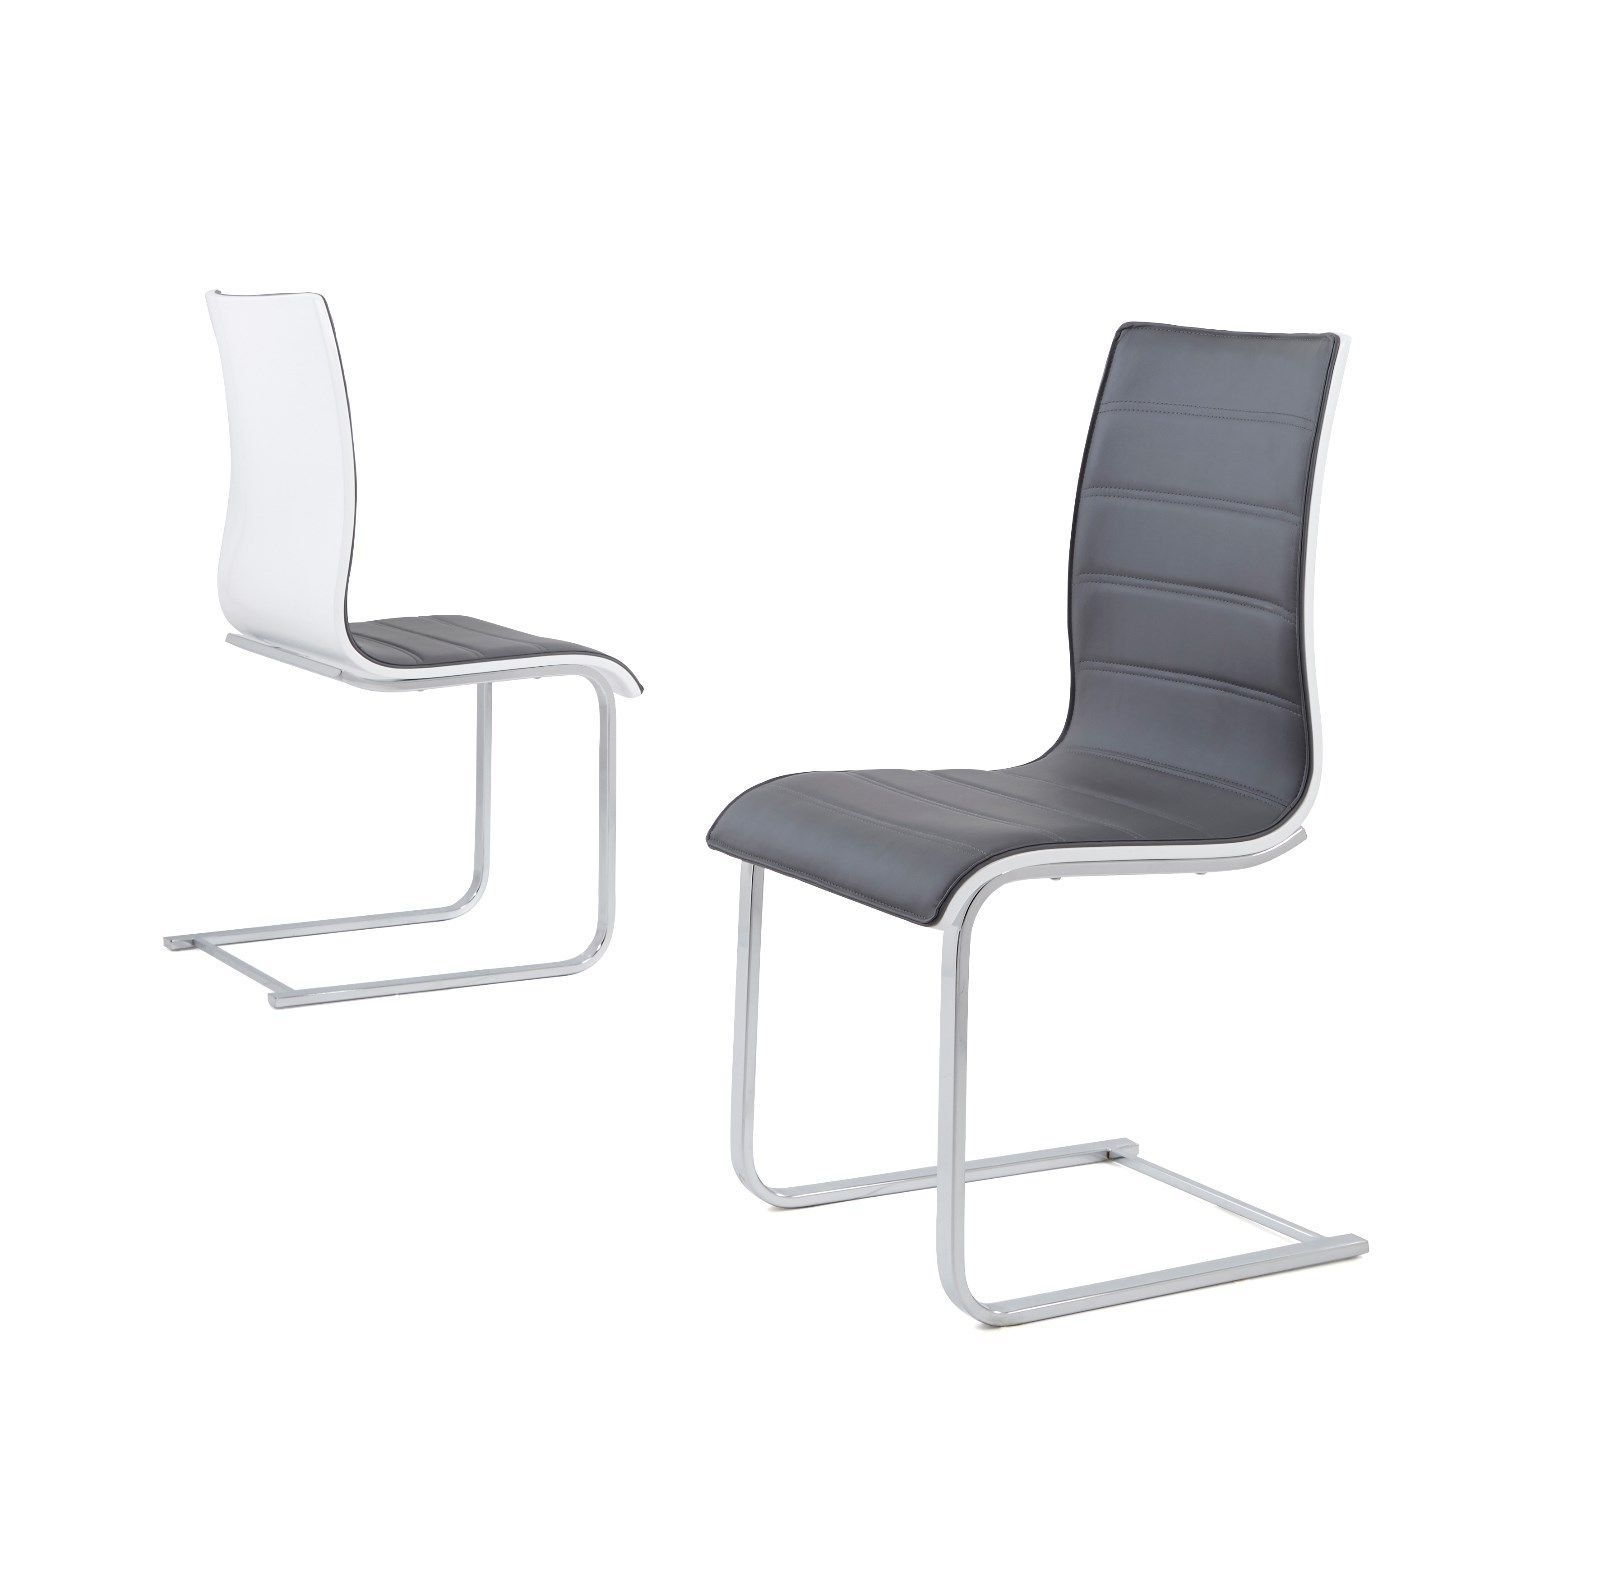 Wynn High Gloss Back Dining Chairs Only – Grey & White Throughout Favorite Grey Dining Chairs (View 25 of 25)